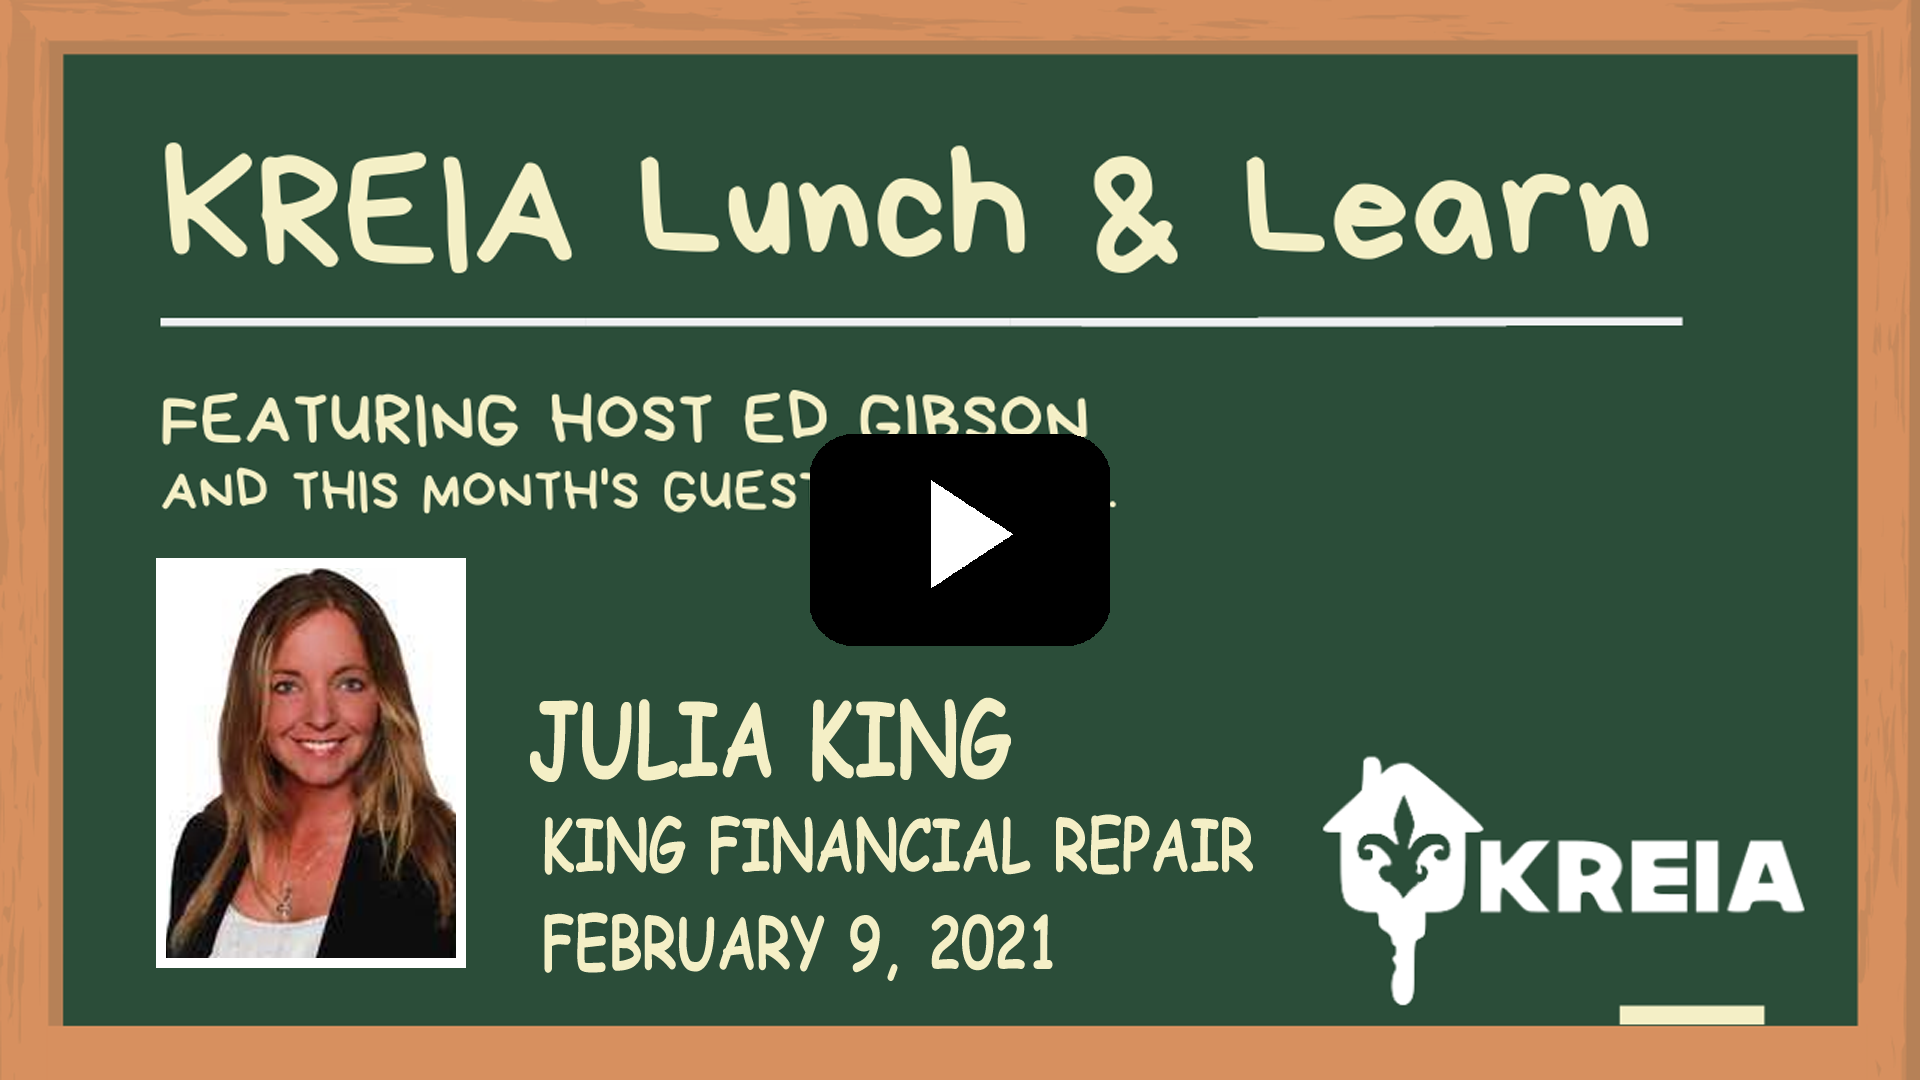 Lunch and Learn with Julia King